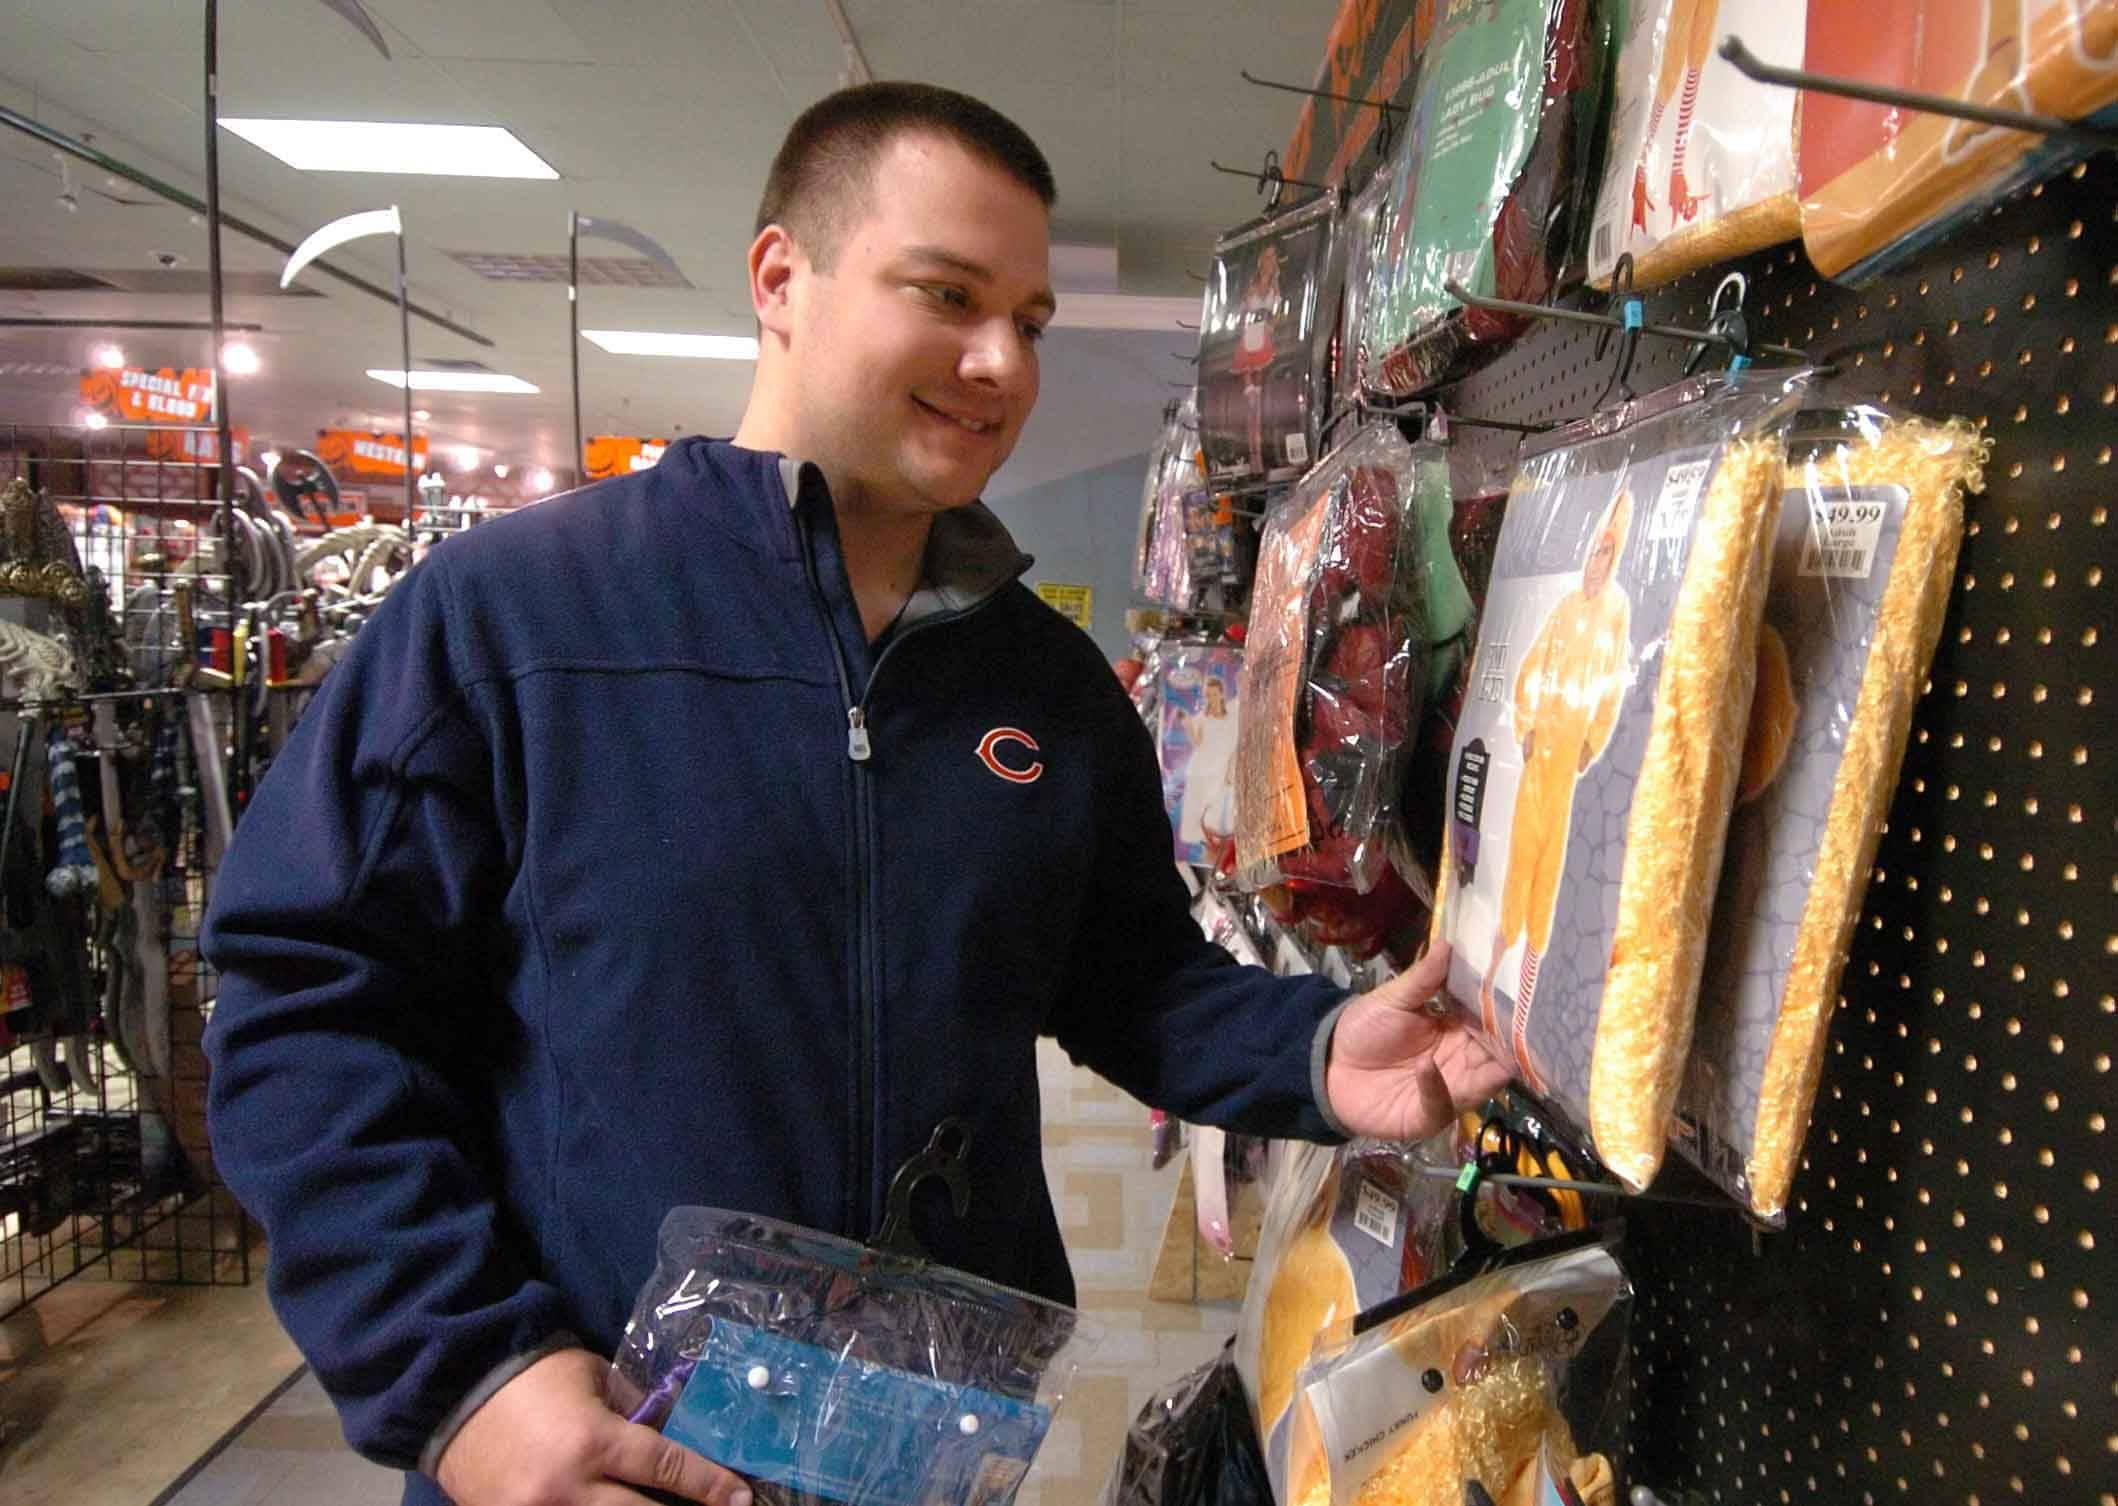 Matt Smetko of Aurora shops for his costume at Halloween City in Downers Grove.